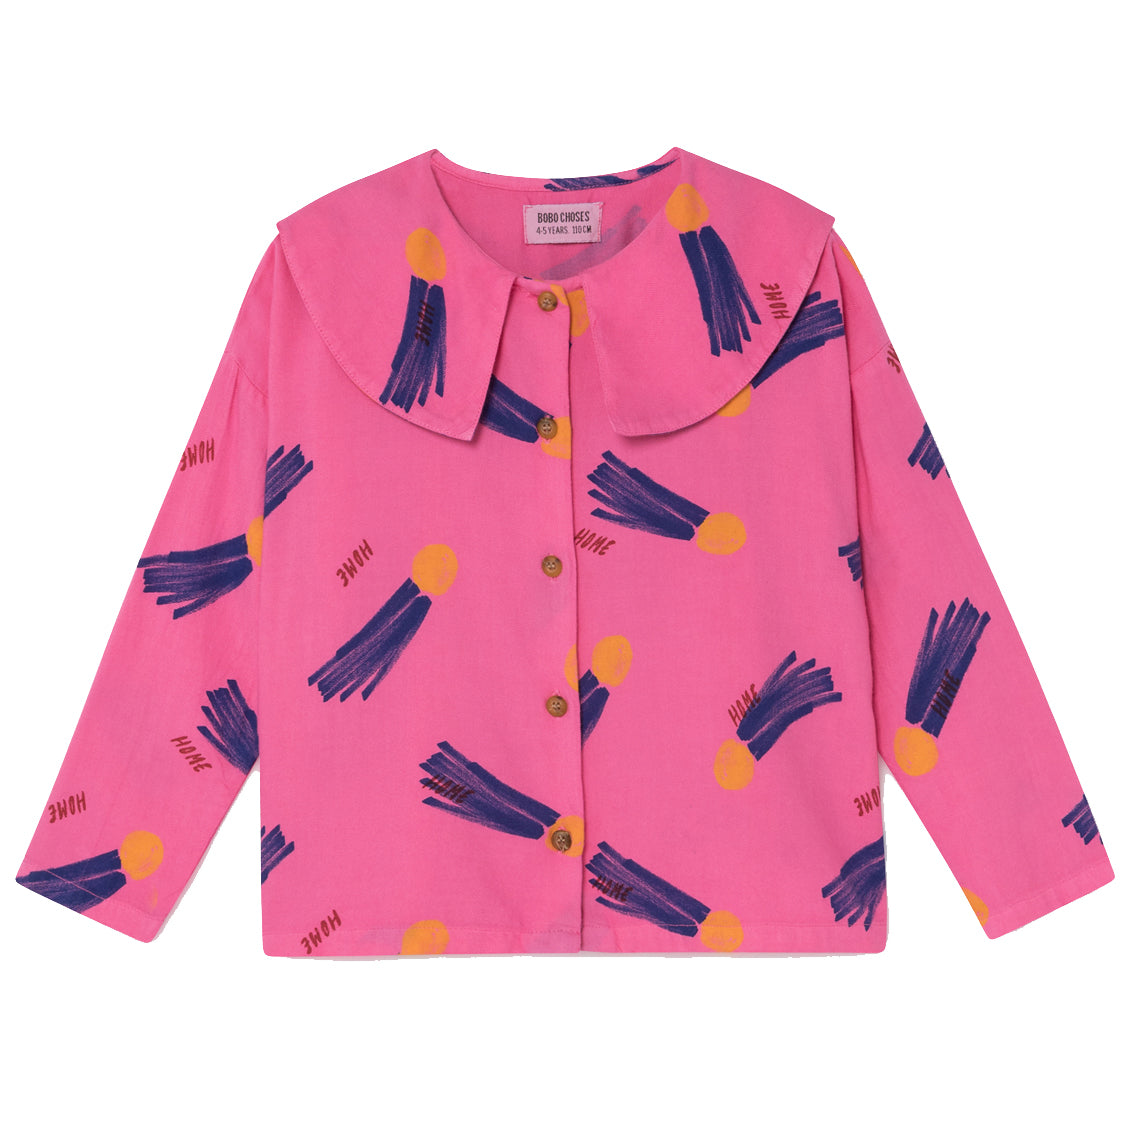 bobo choses a star called home blouse